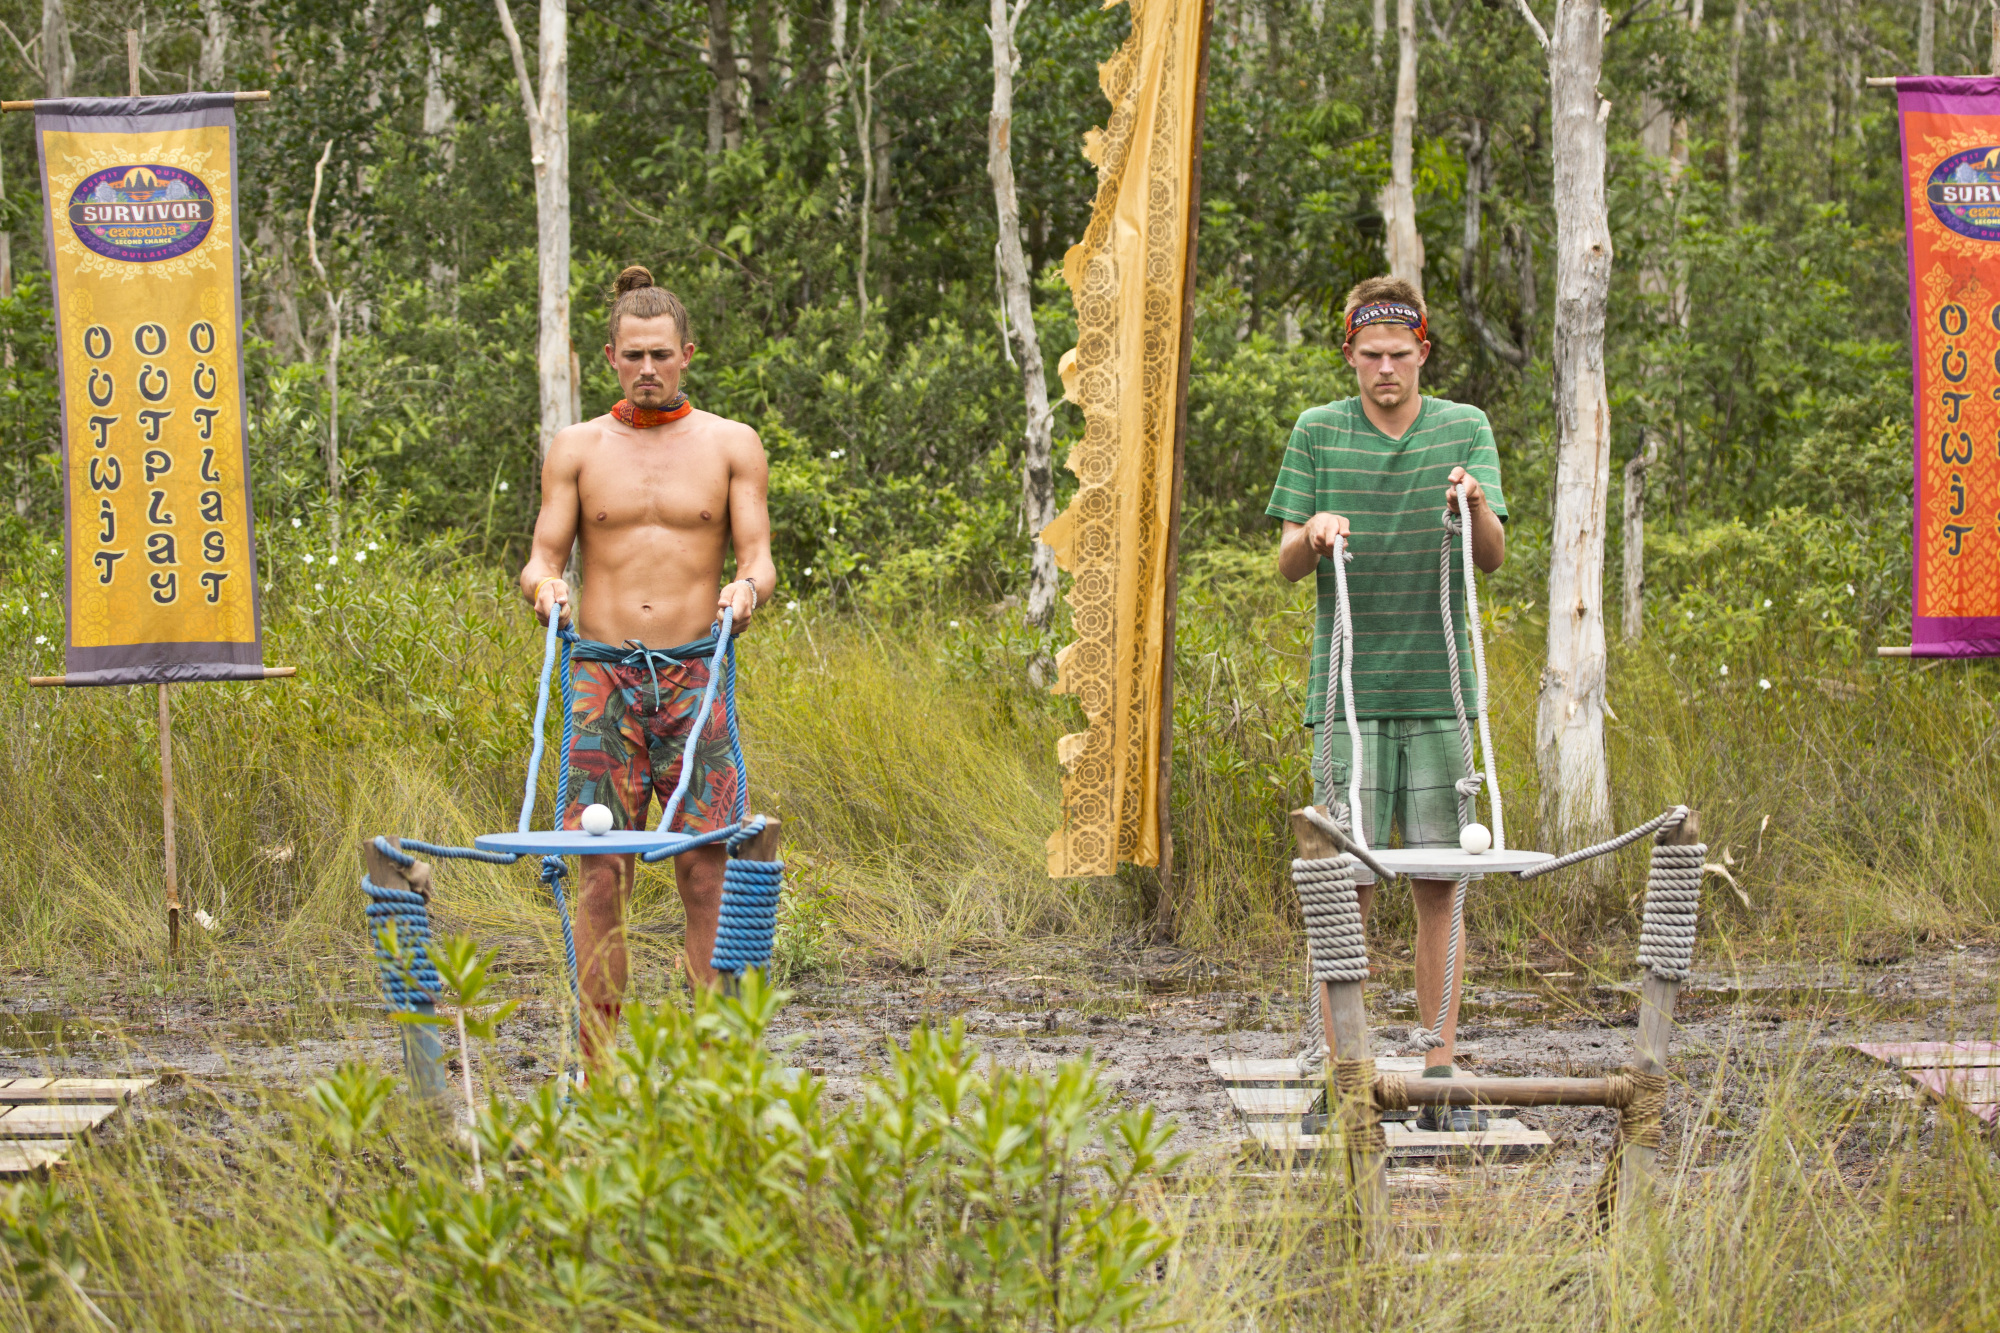 Joe Anglim and Spencer Bledsoe compete in challenge on Survivor: Second Chance